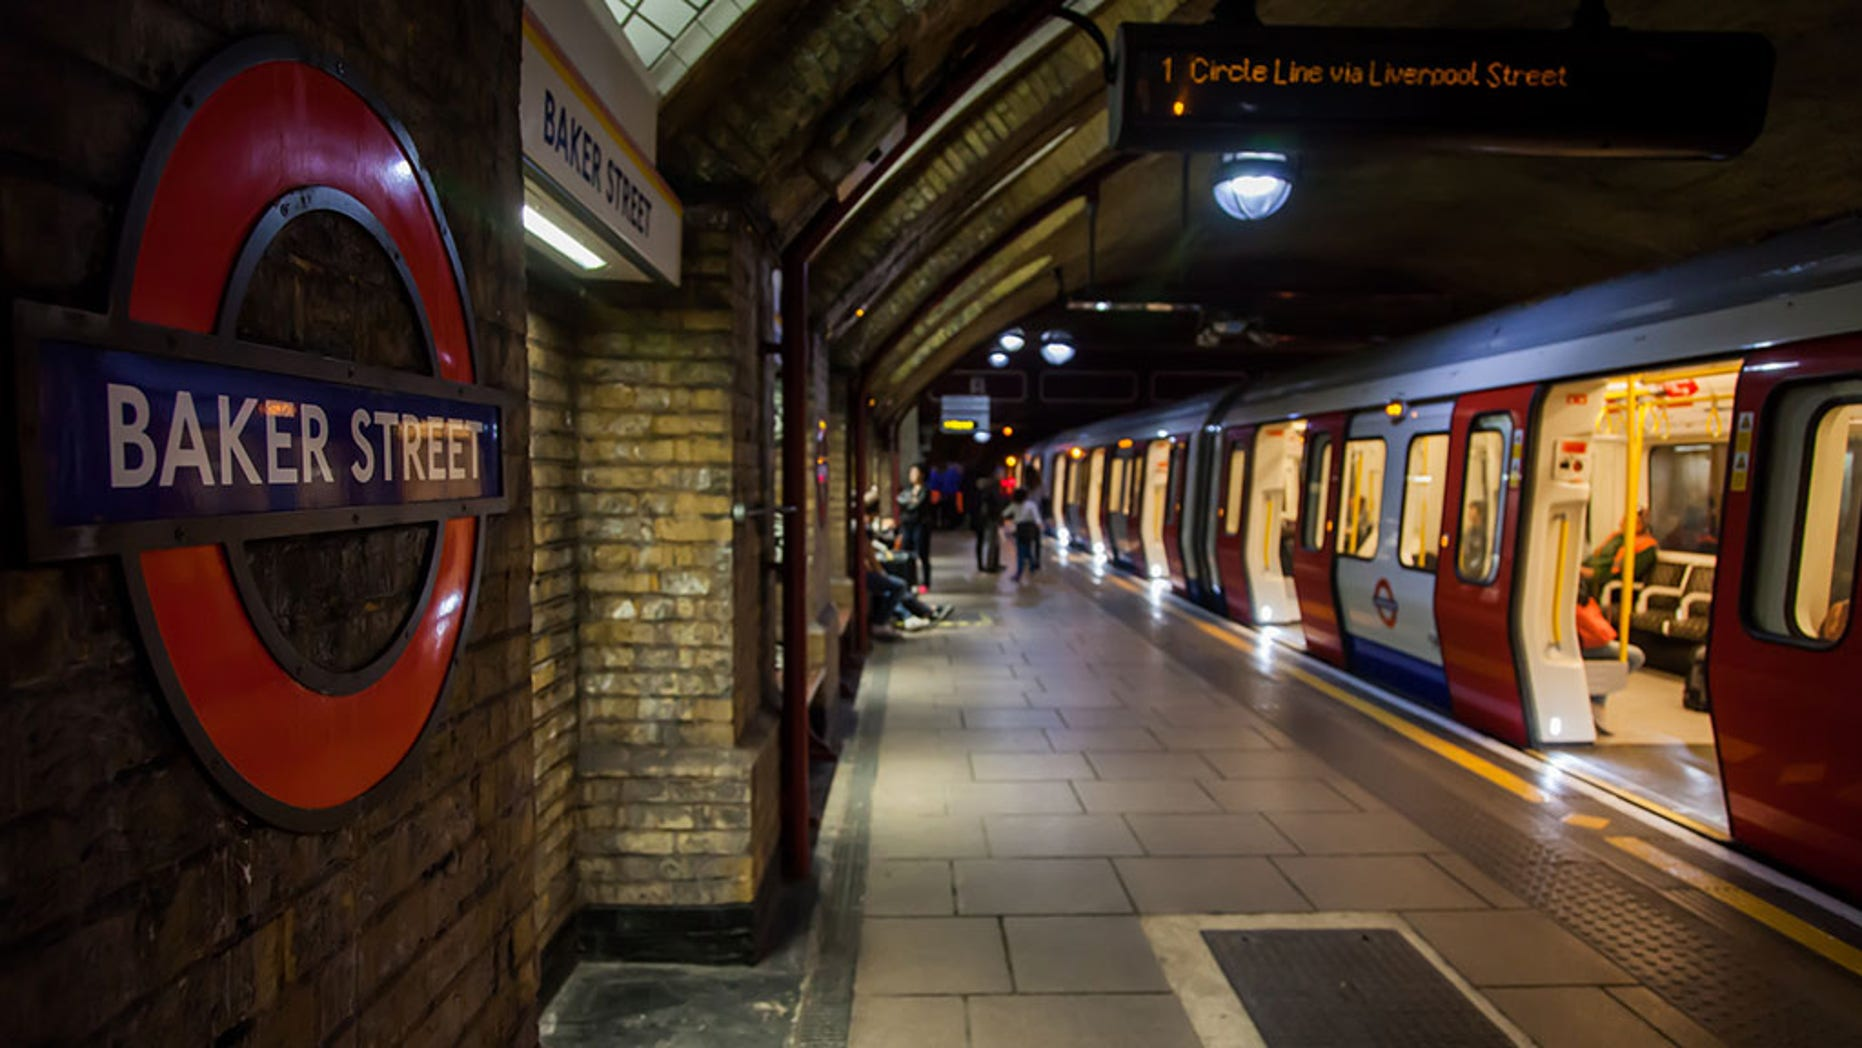 Baker Street underground station was evacuated Friday night after a woman with a stroller fell onto the tracks.